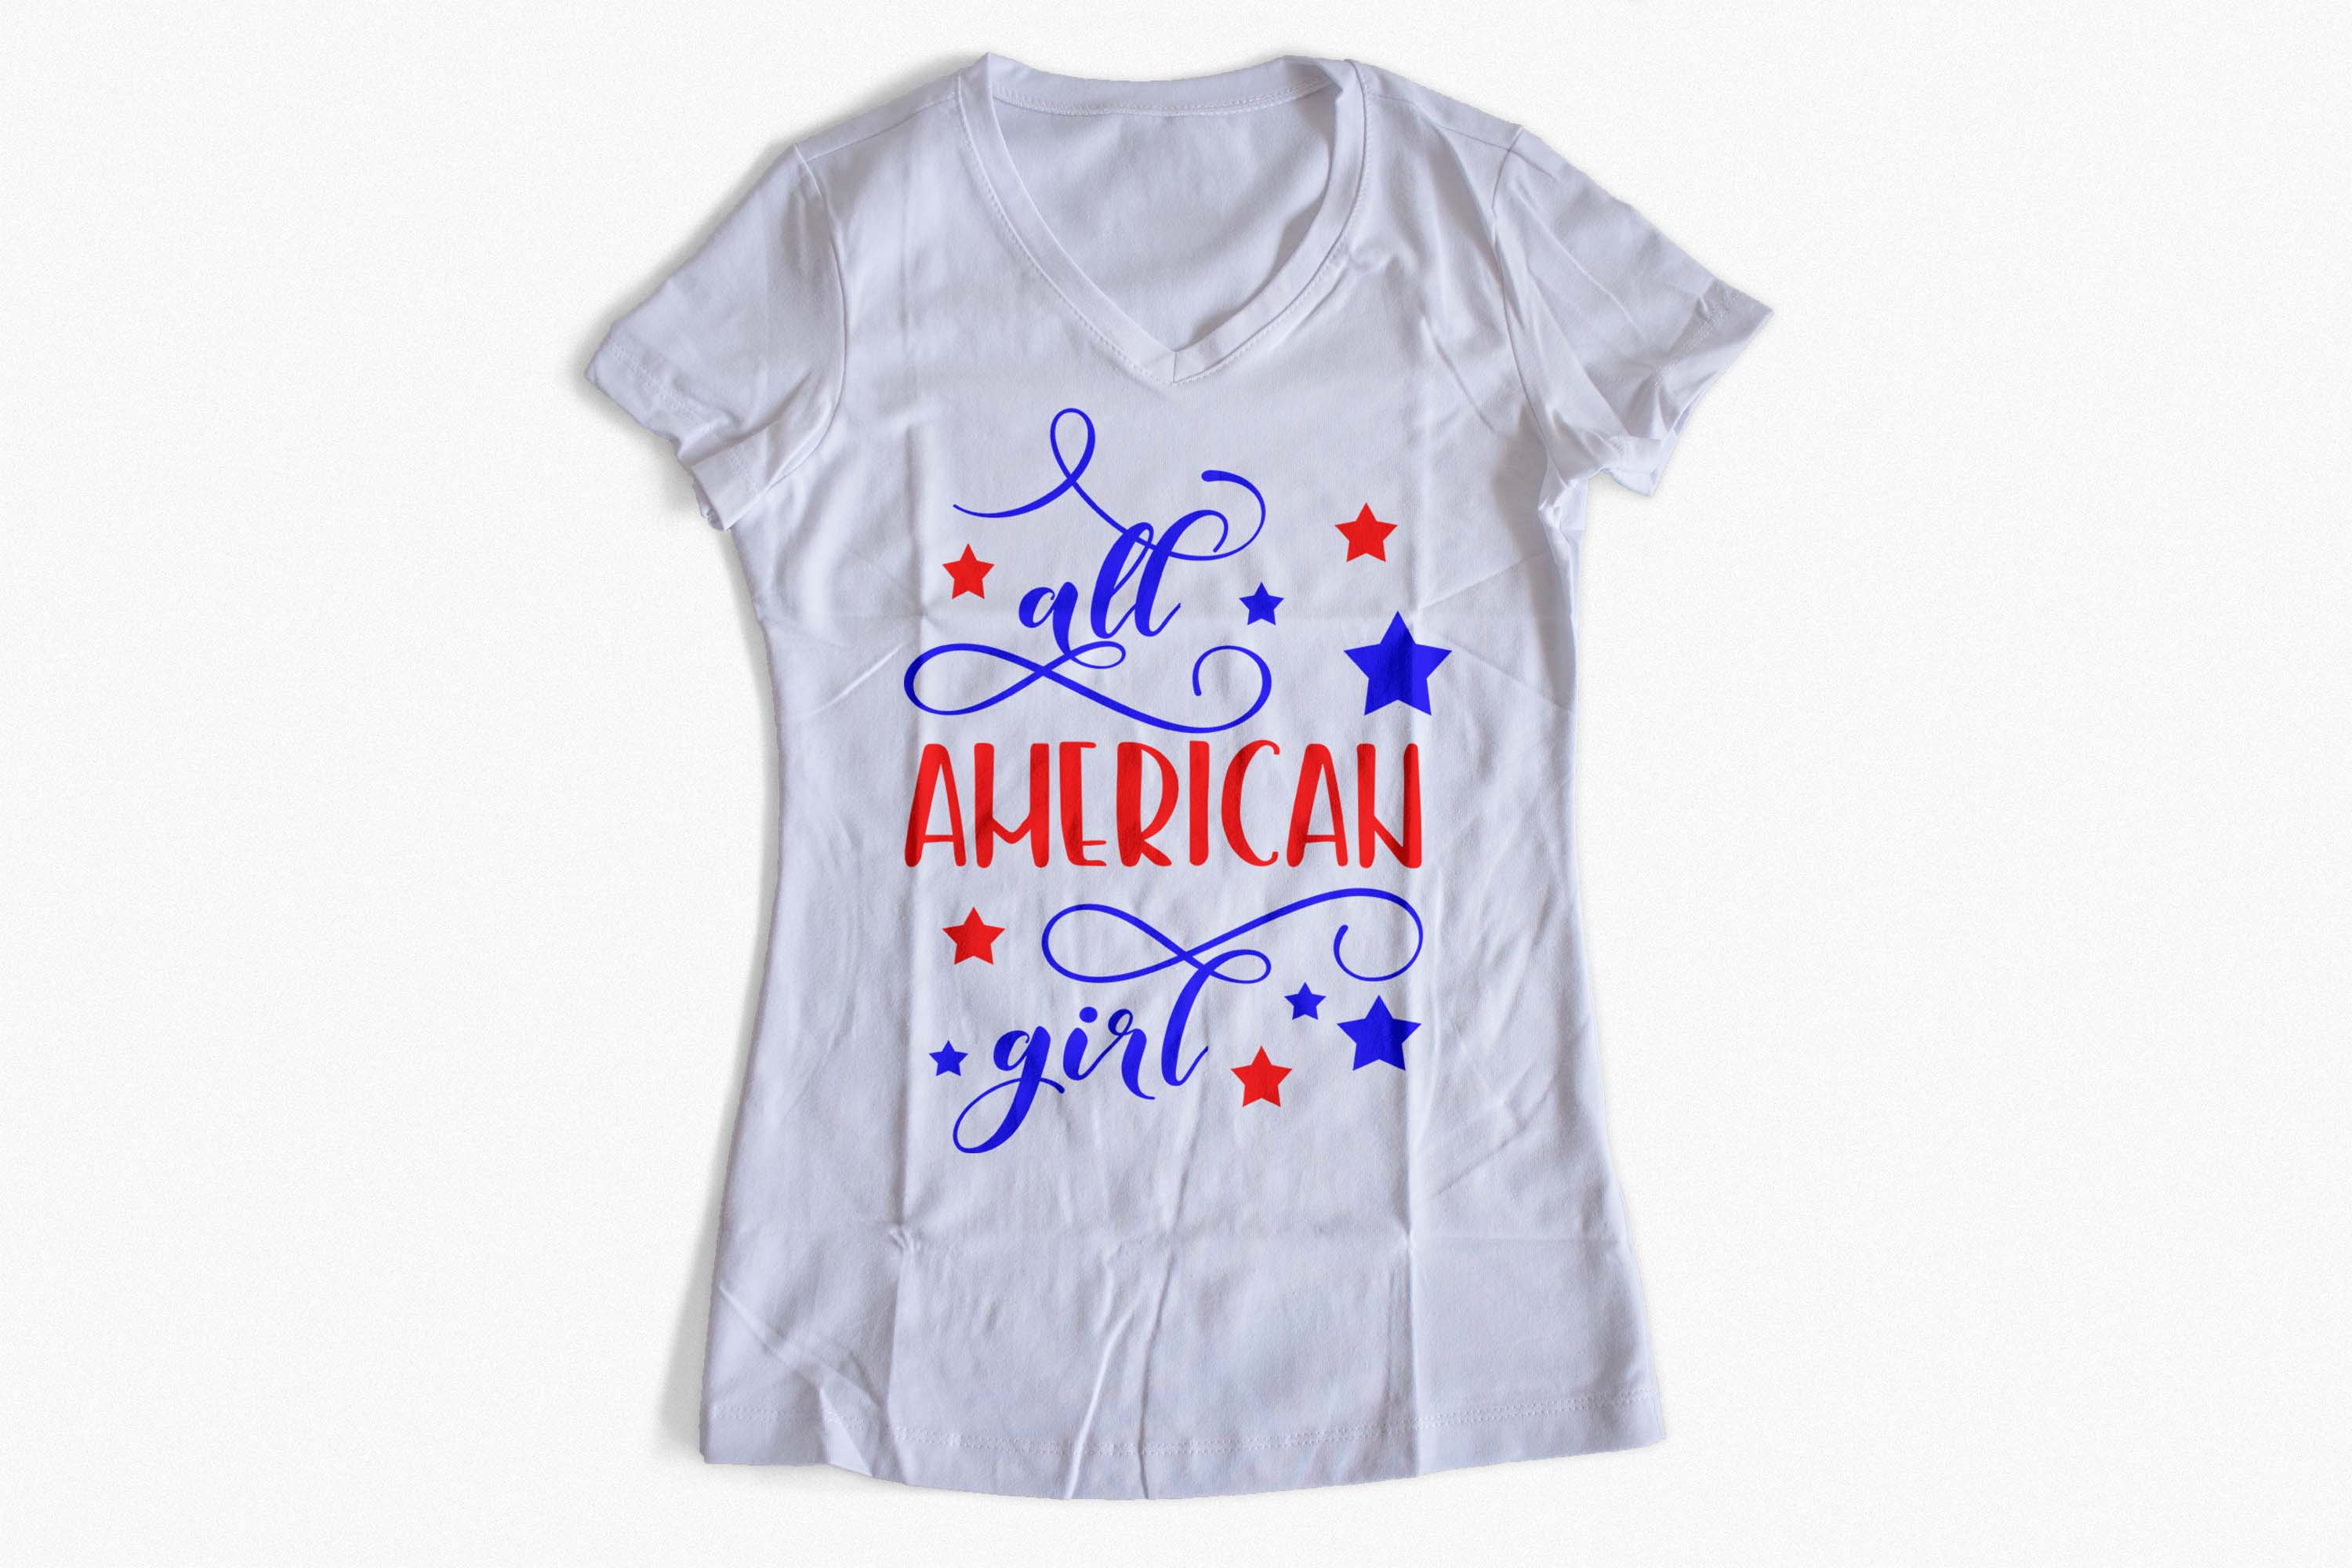 All American girl SVG PNG EPS DXF, Stars svg design example image 3